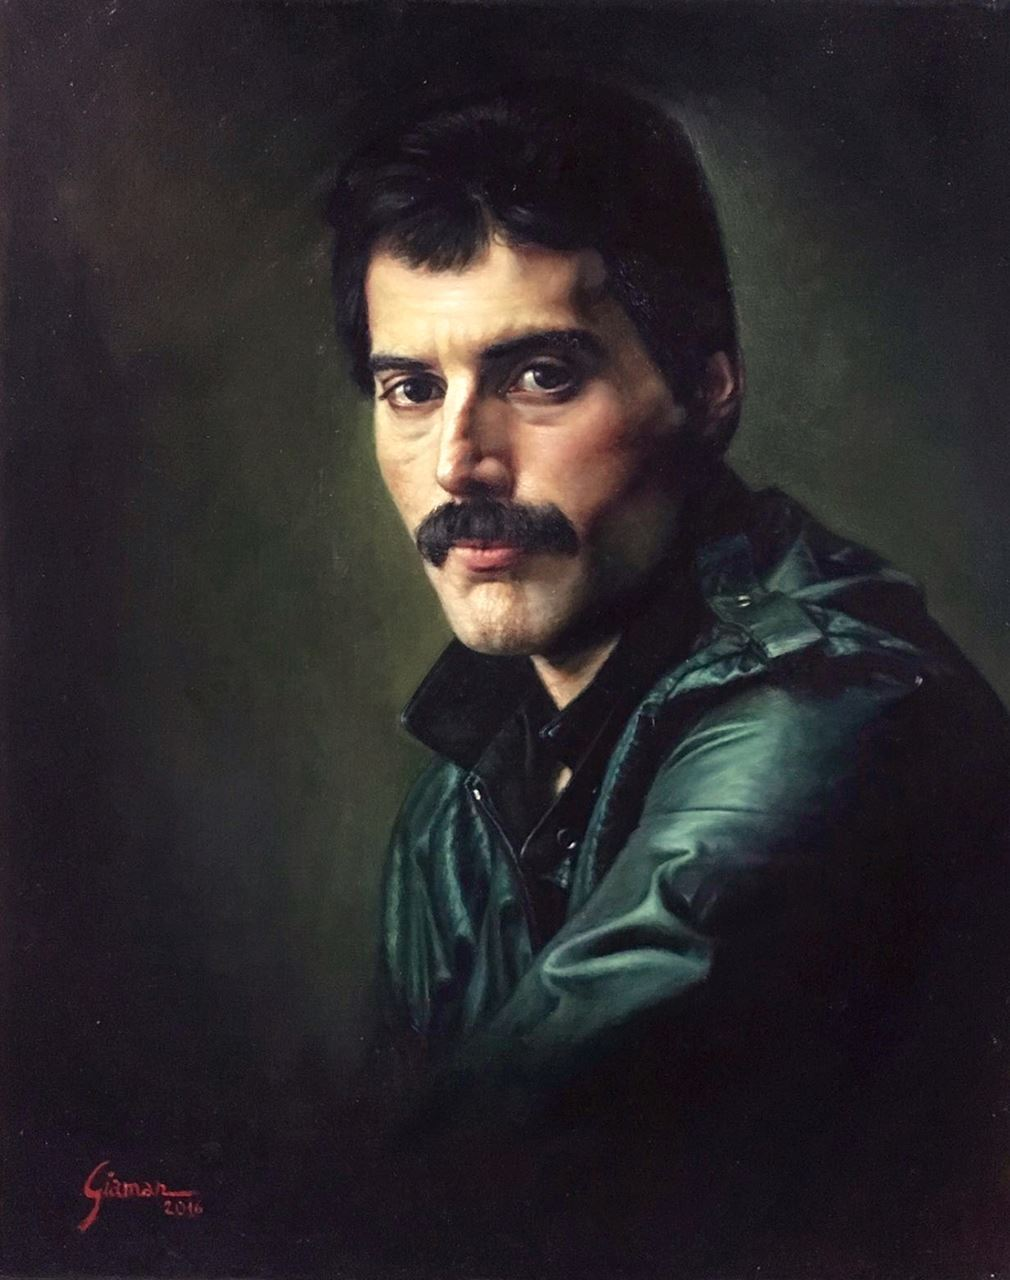 Picture of Freddie Mercury